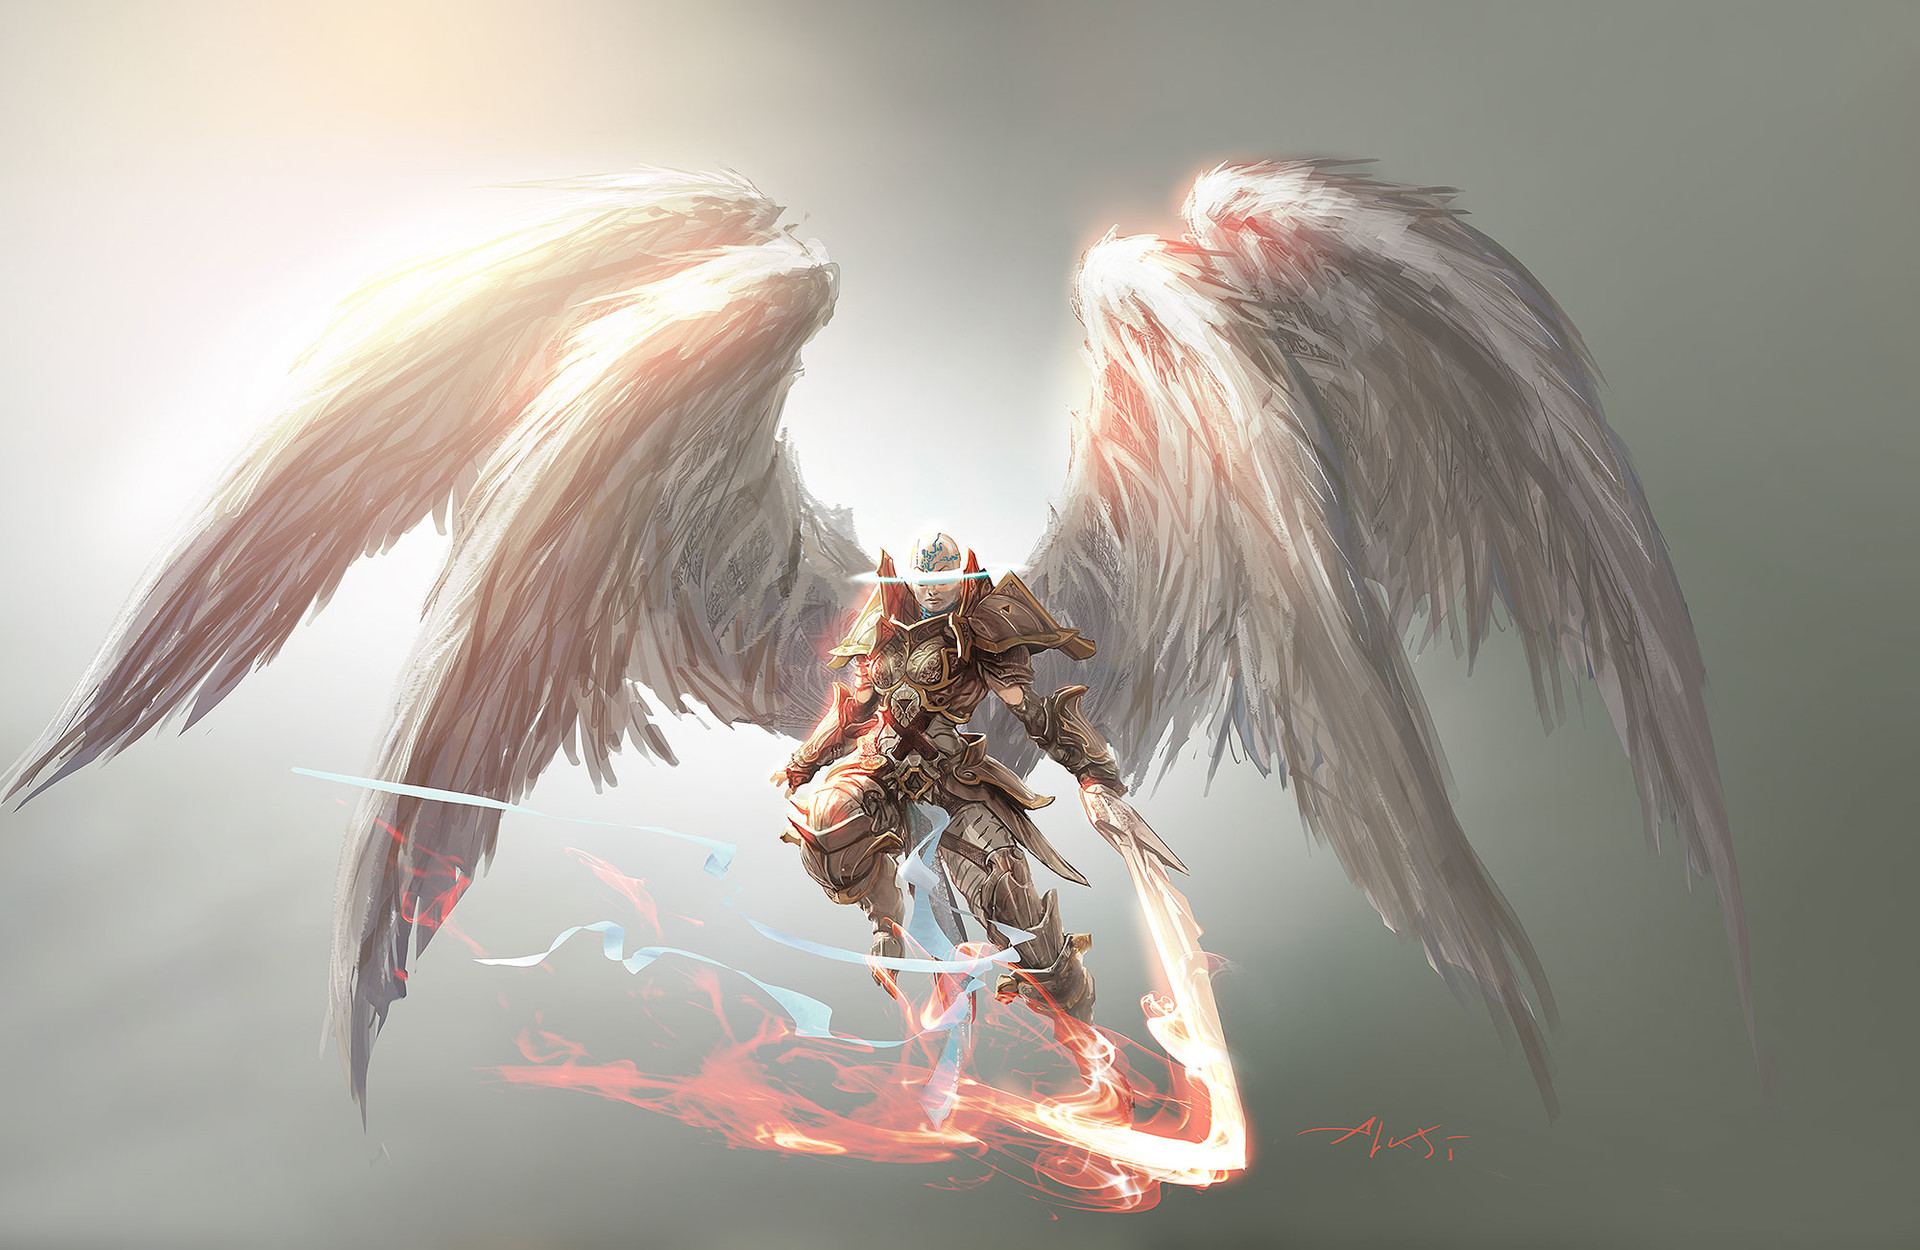 Aleksi Briclot Angel concept art for Magic The Gathering Battle for Zendikar